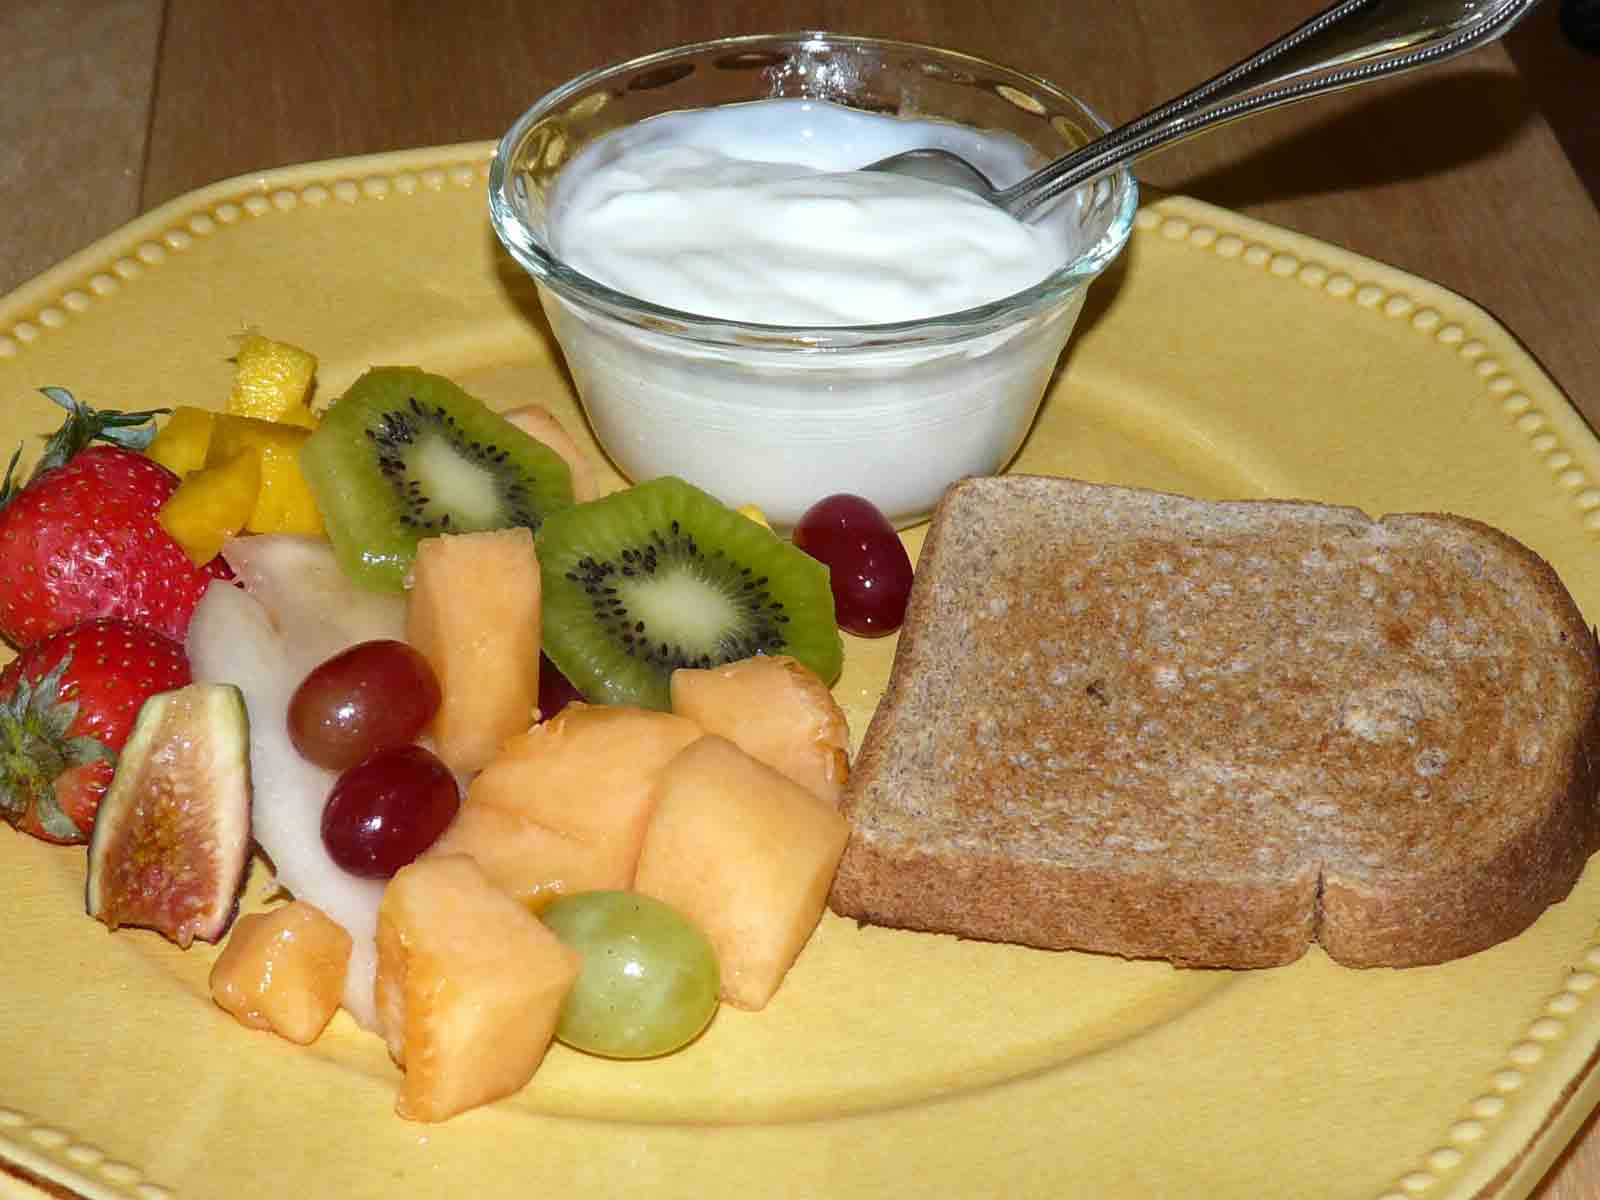 Healthy Breakfast Foods  Food and Health munications